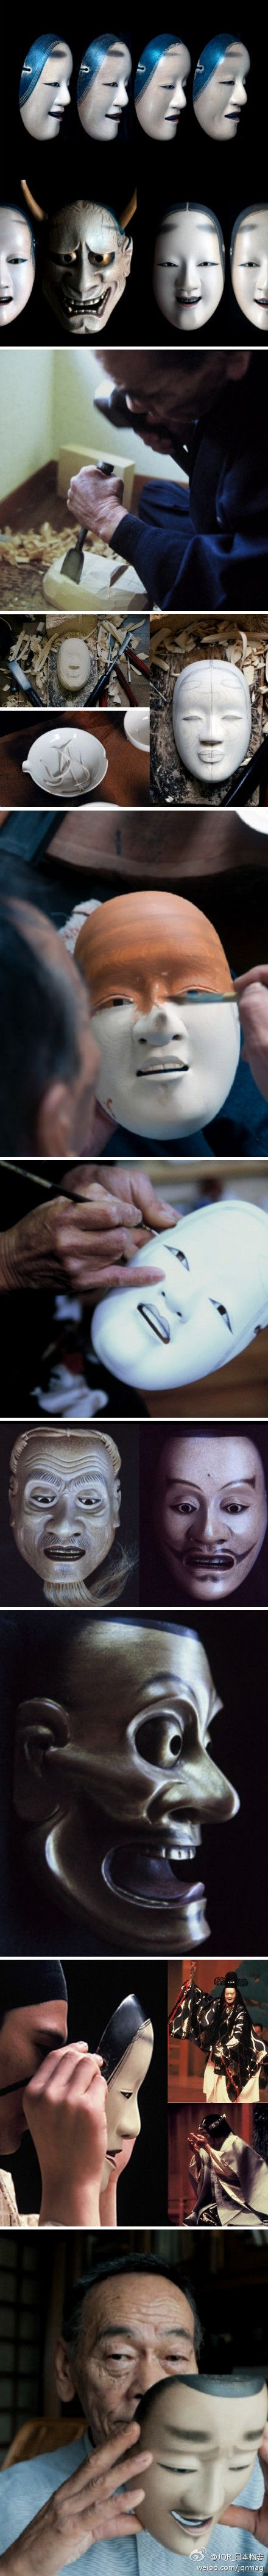 I generally hate these really long images on Pinterest but this one is fantastic. - Noh mask artist, Koichi TAKATSU 能面师髙津紘一(1941-2011)Japan